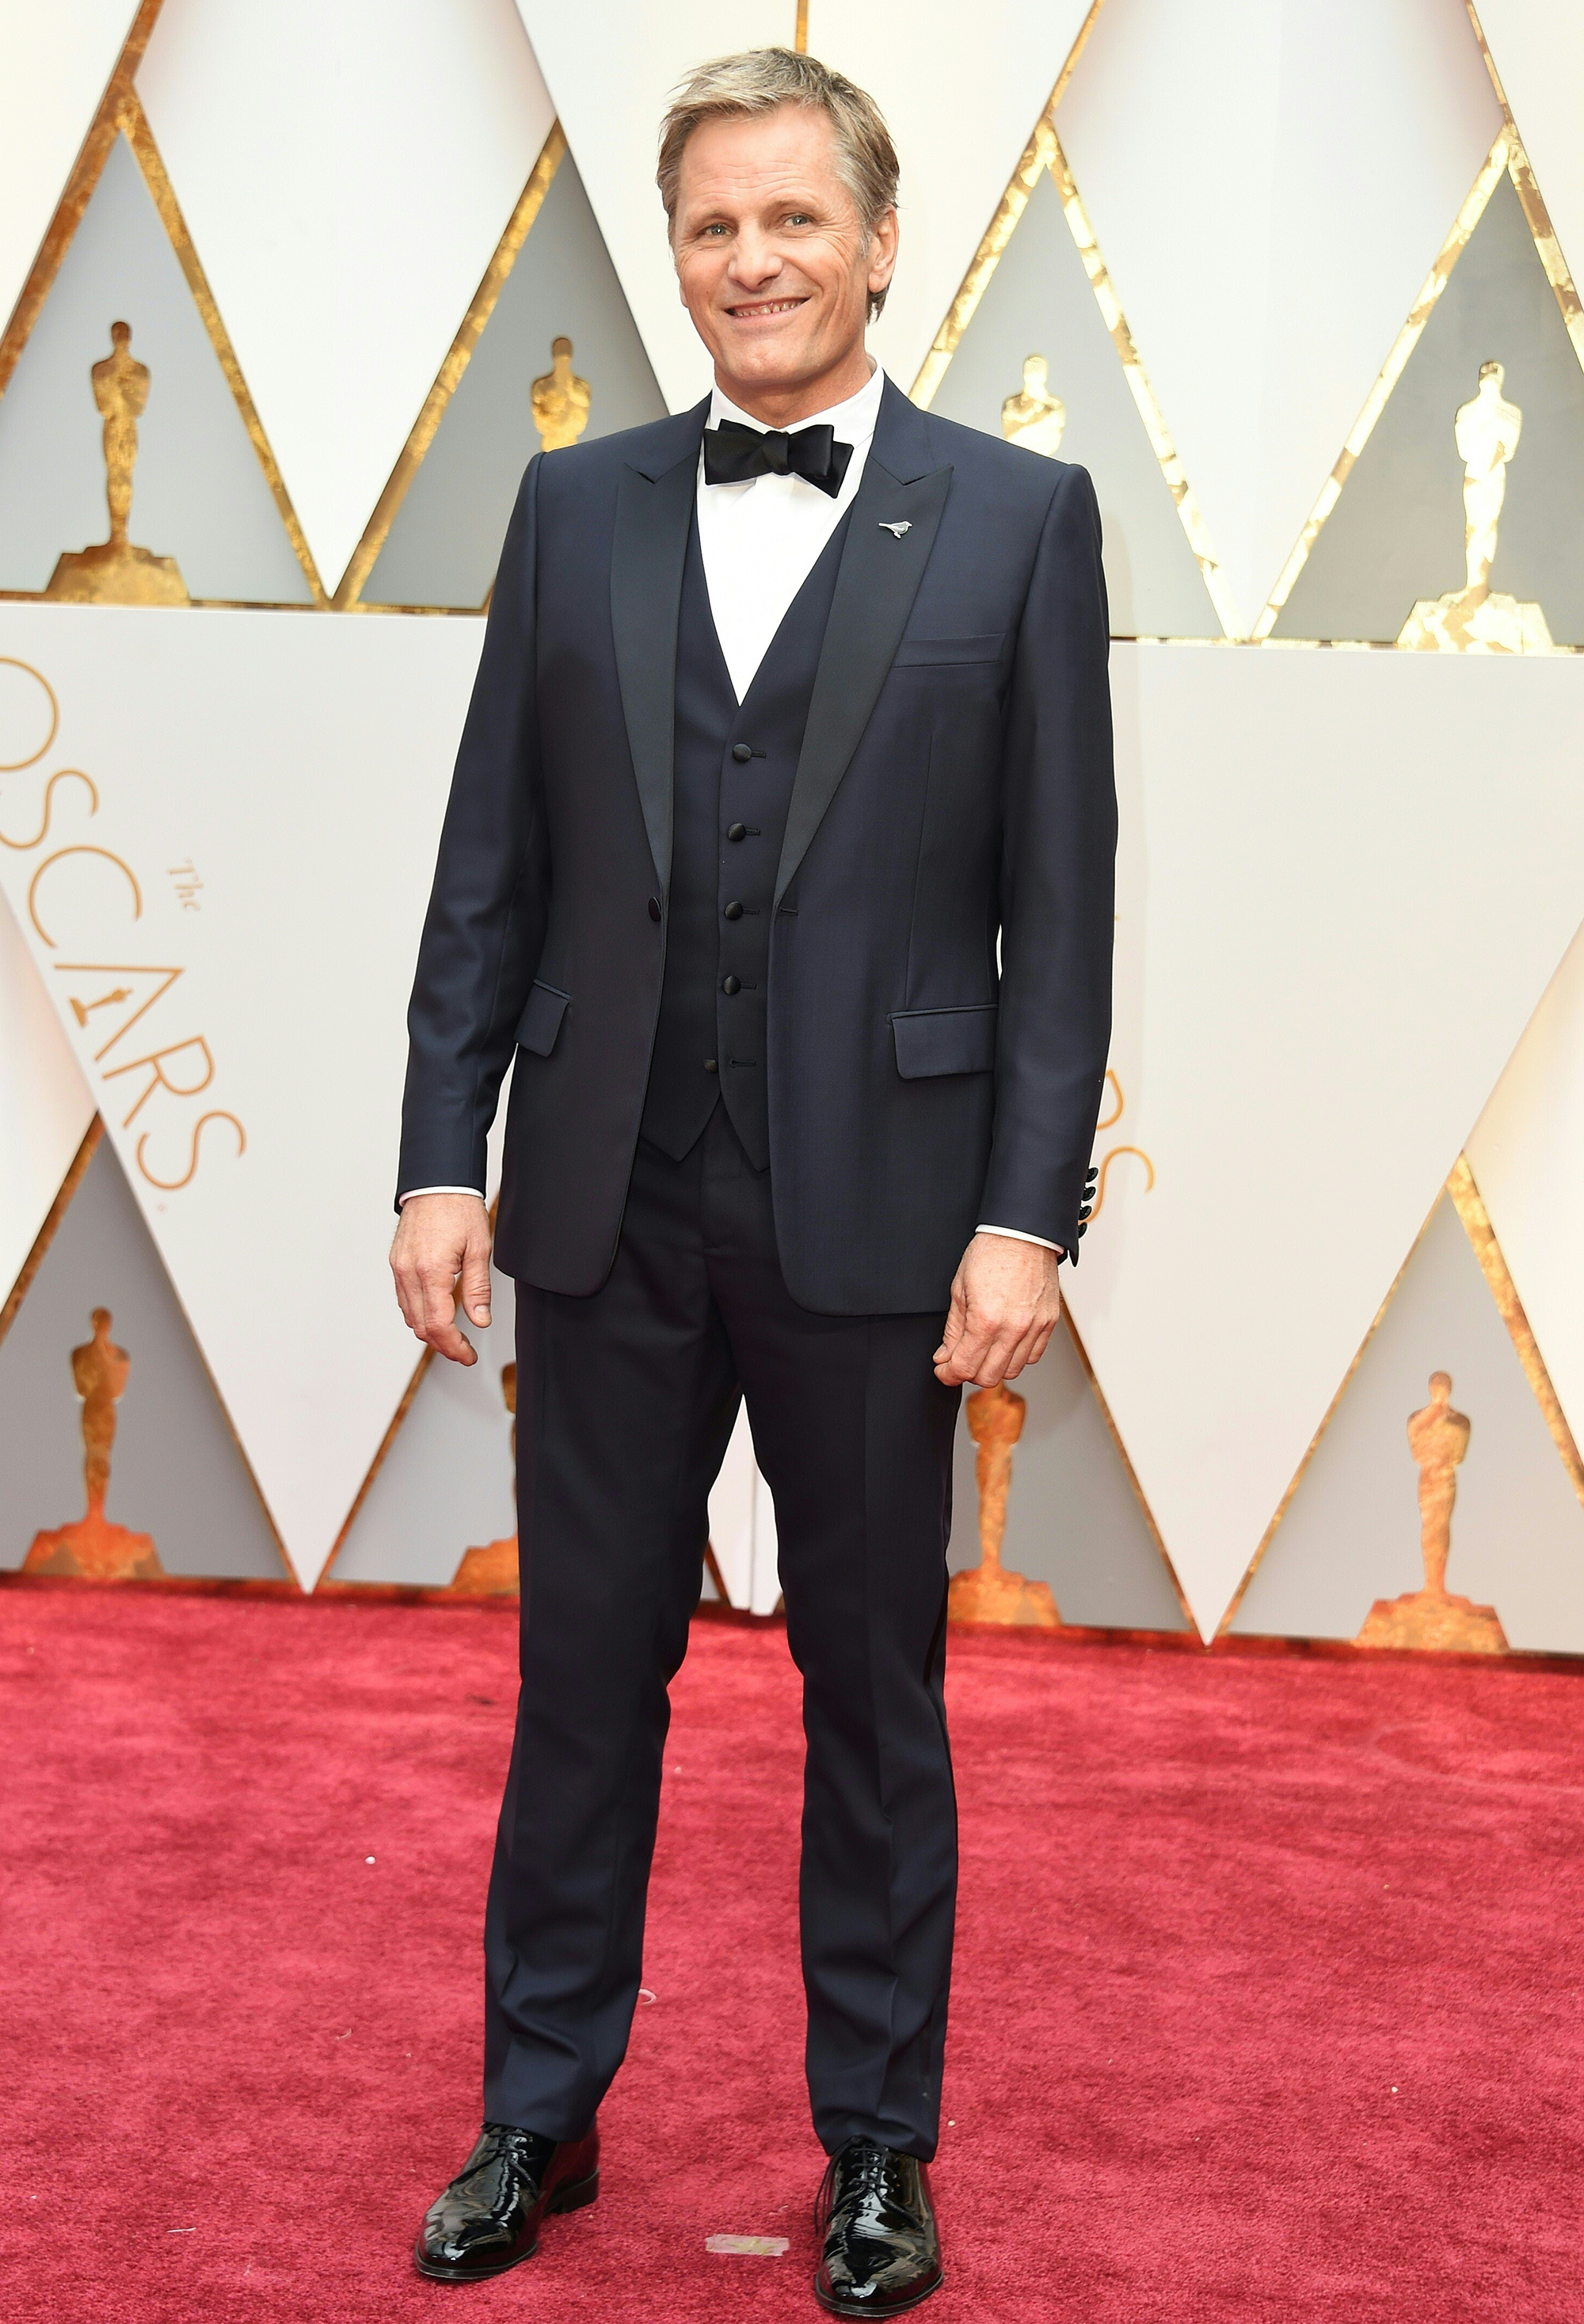 Viggo Mortensen on the red carpet for the 89th Oscars, on Feb. 26, 2017 in Hollywood, Calif.